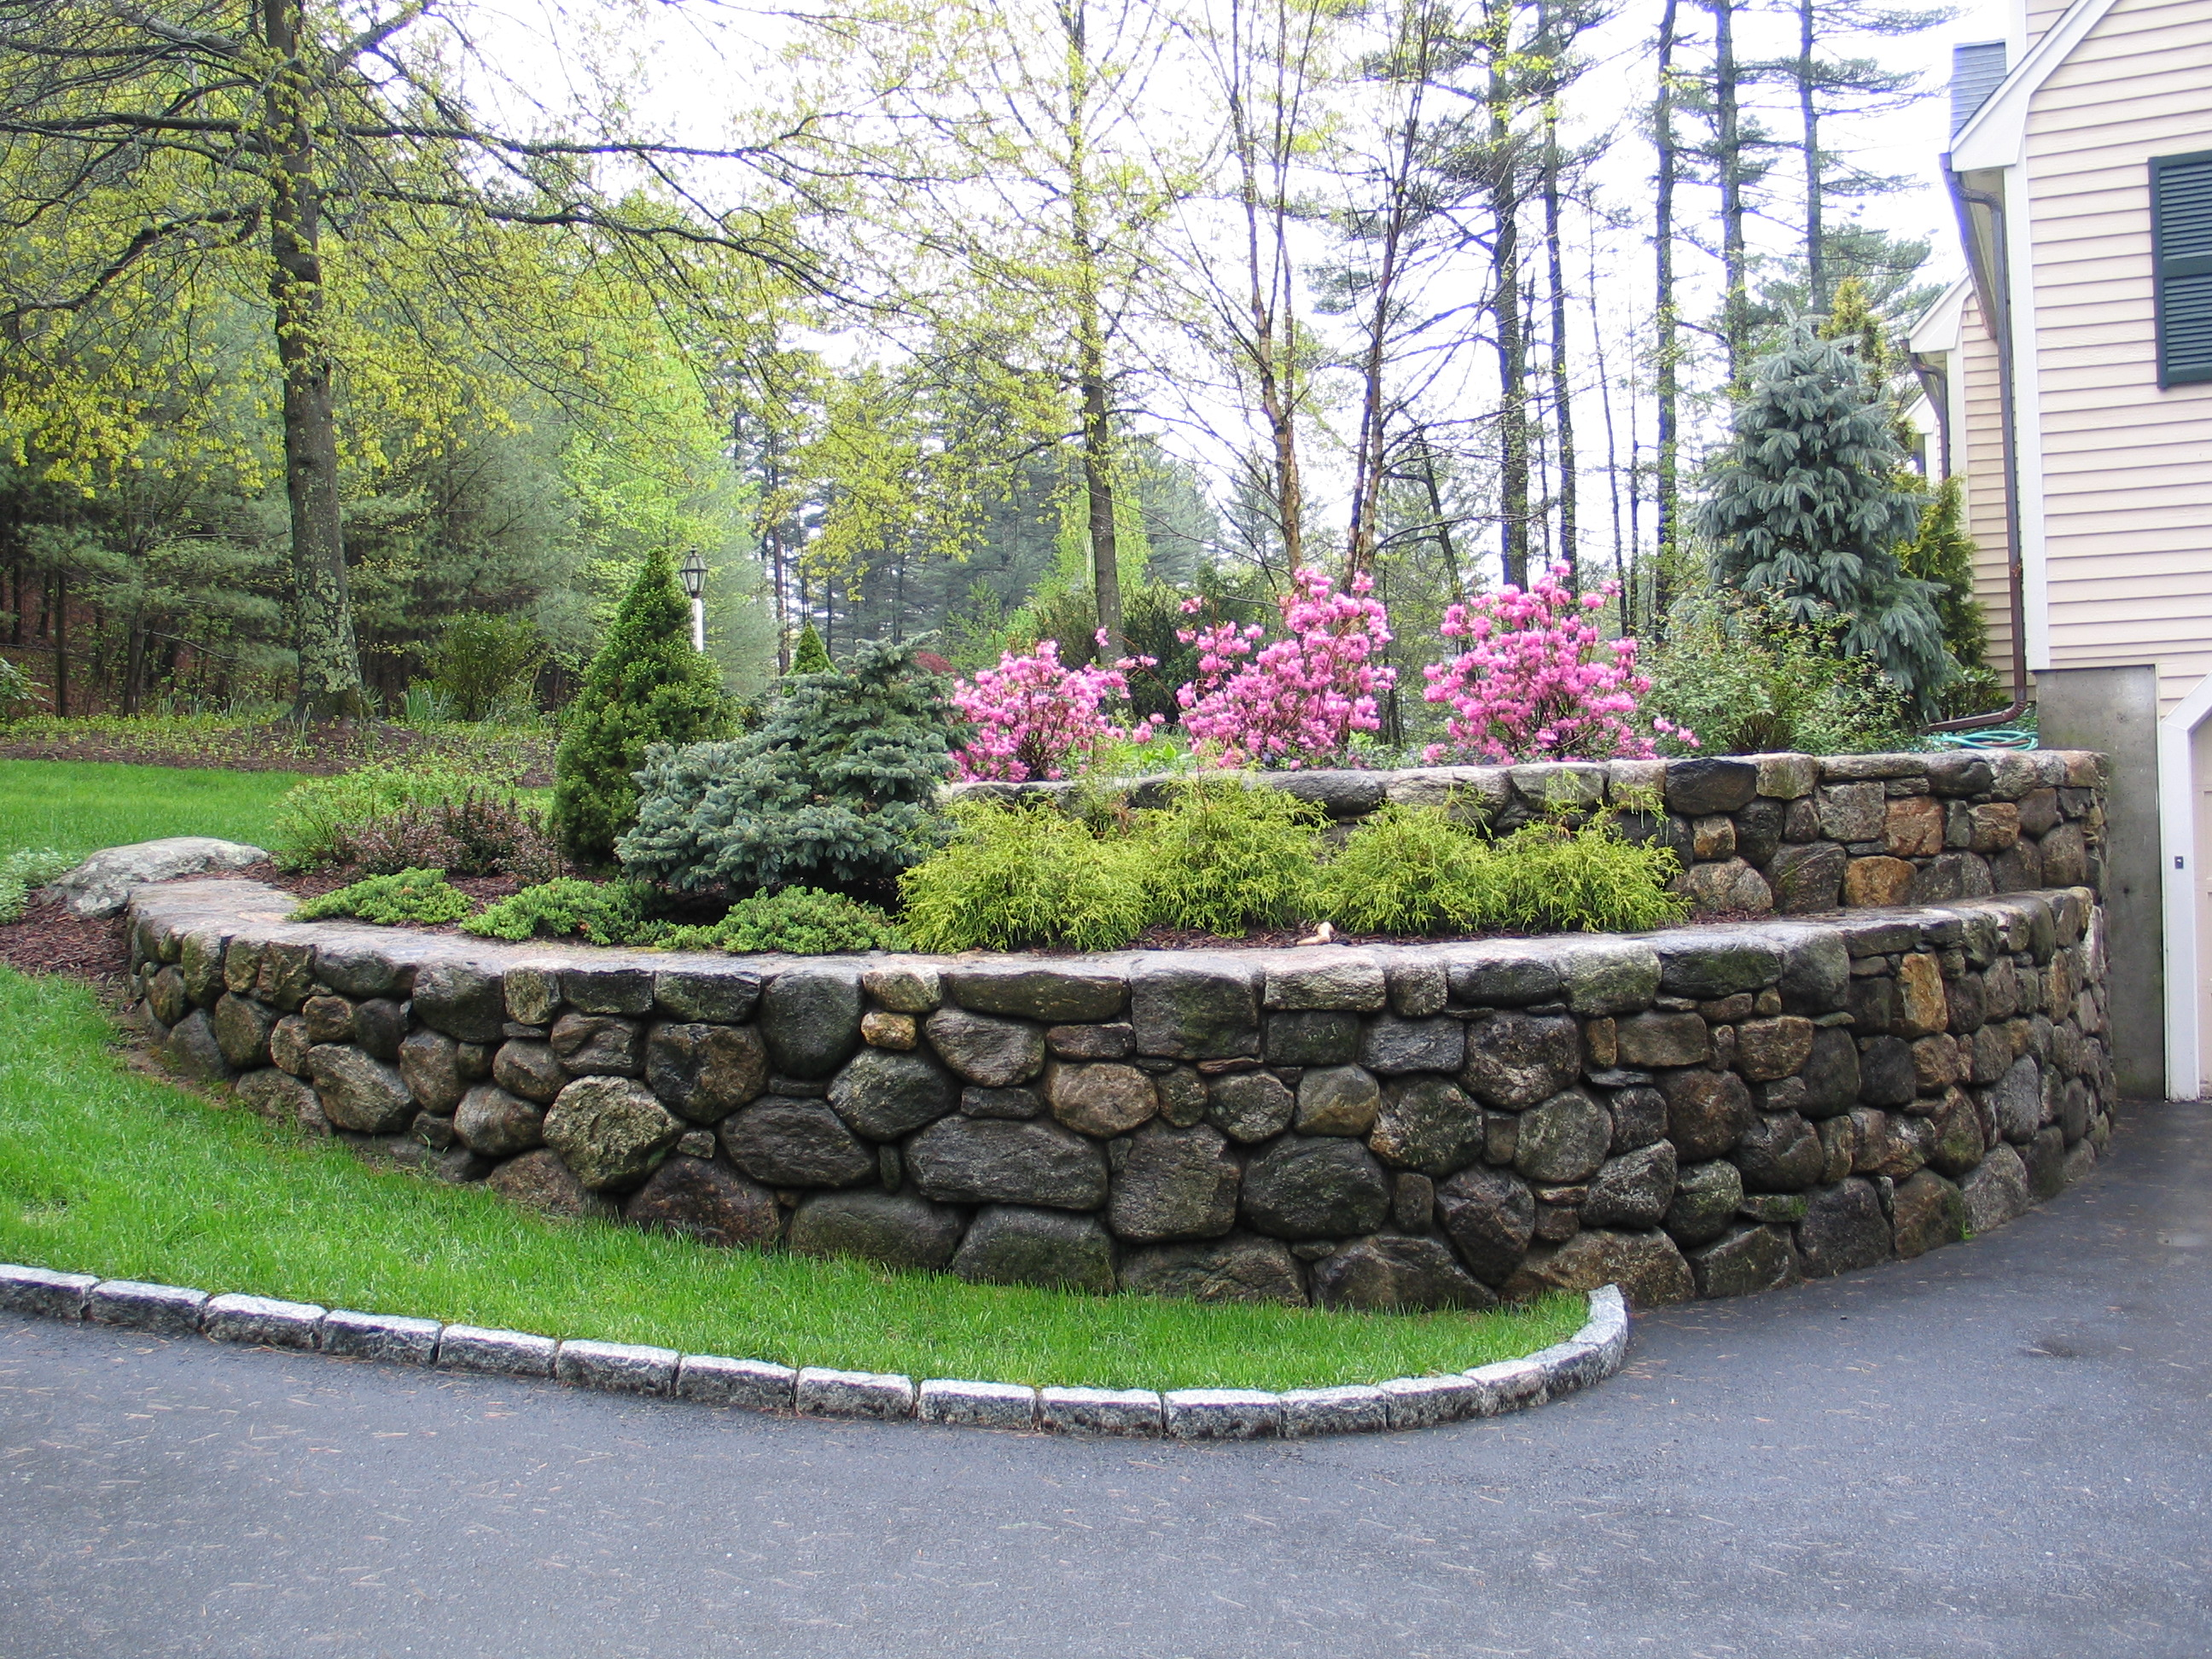 Landscape Design: Dana Schock & Associates, Project Location:  Lincoln, MA., Built: 1989